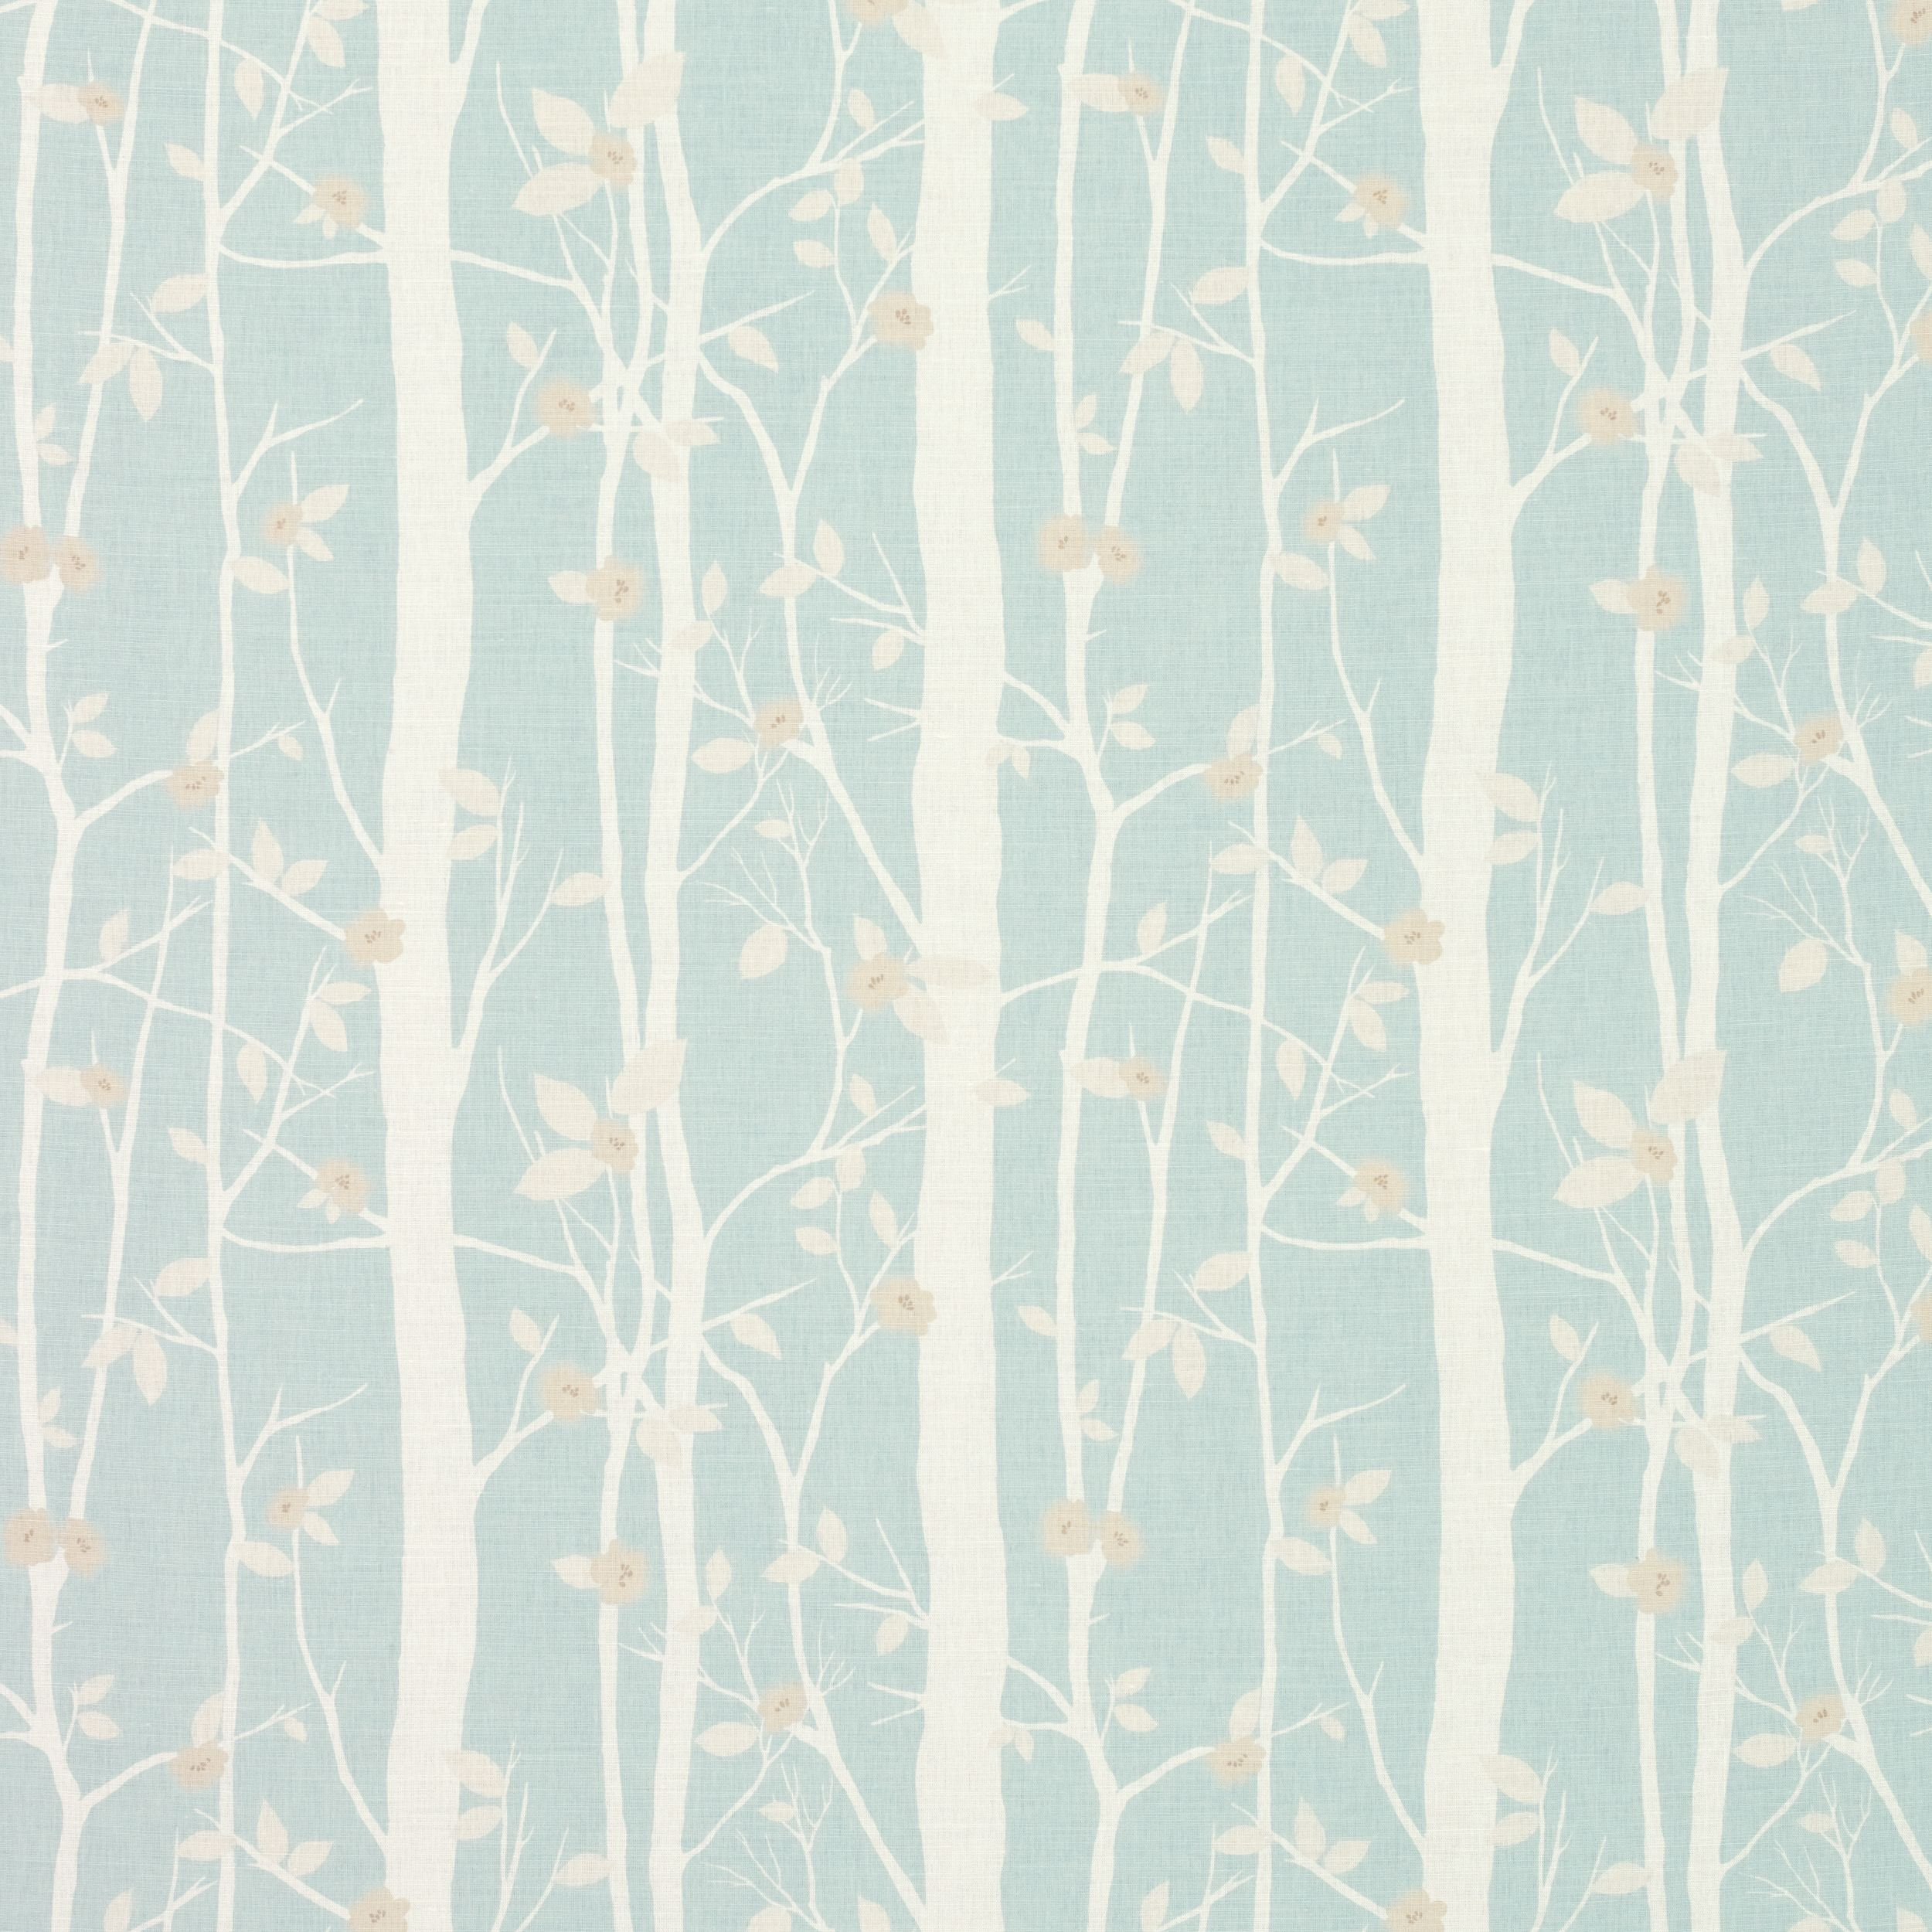 Laura Ashley Fabric Cottonwood Duck Egg Floral Cotton Our